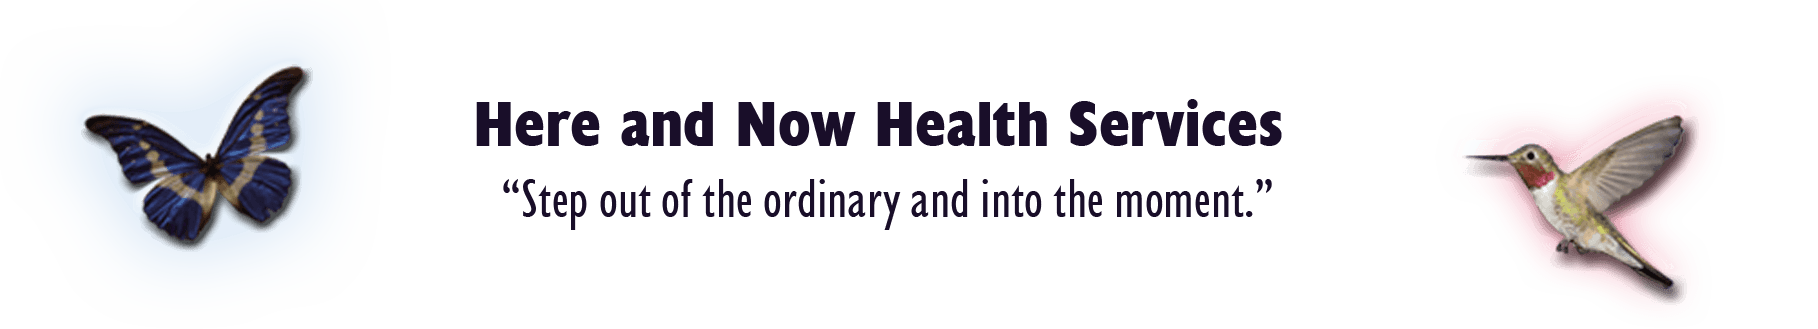 Here and Now Health Services